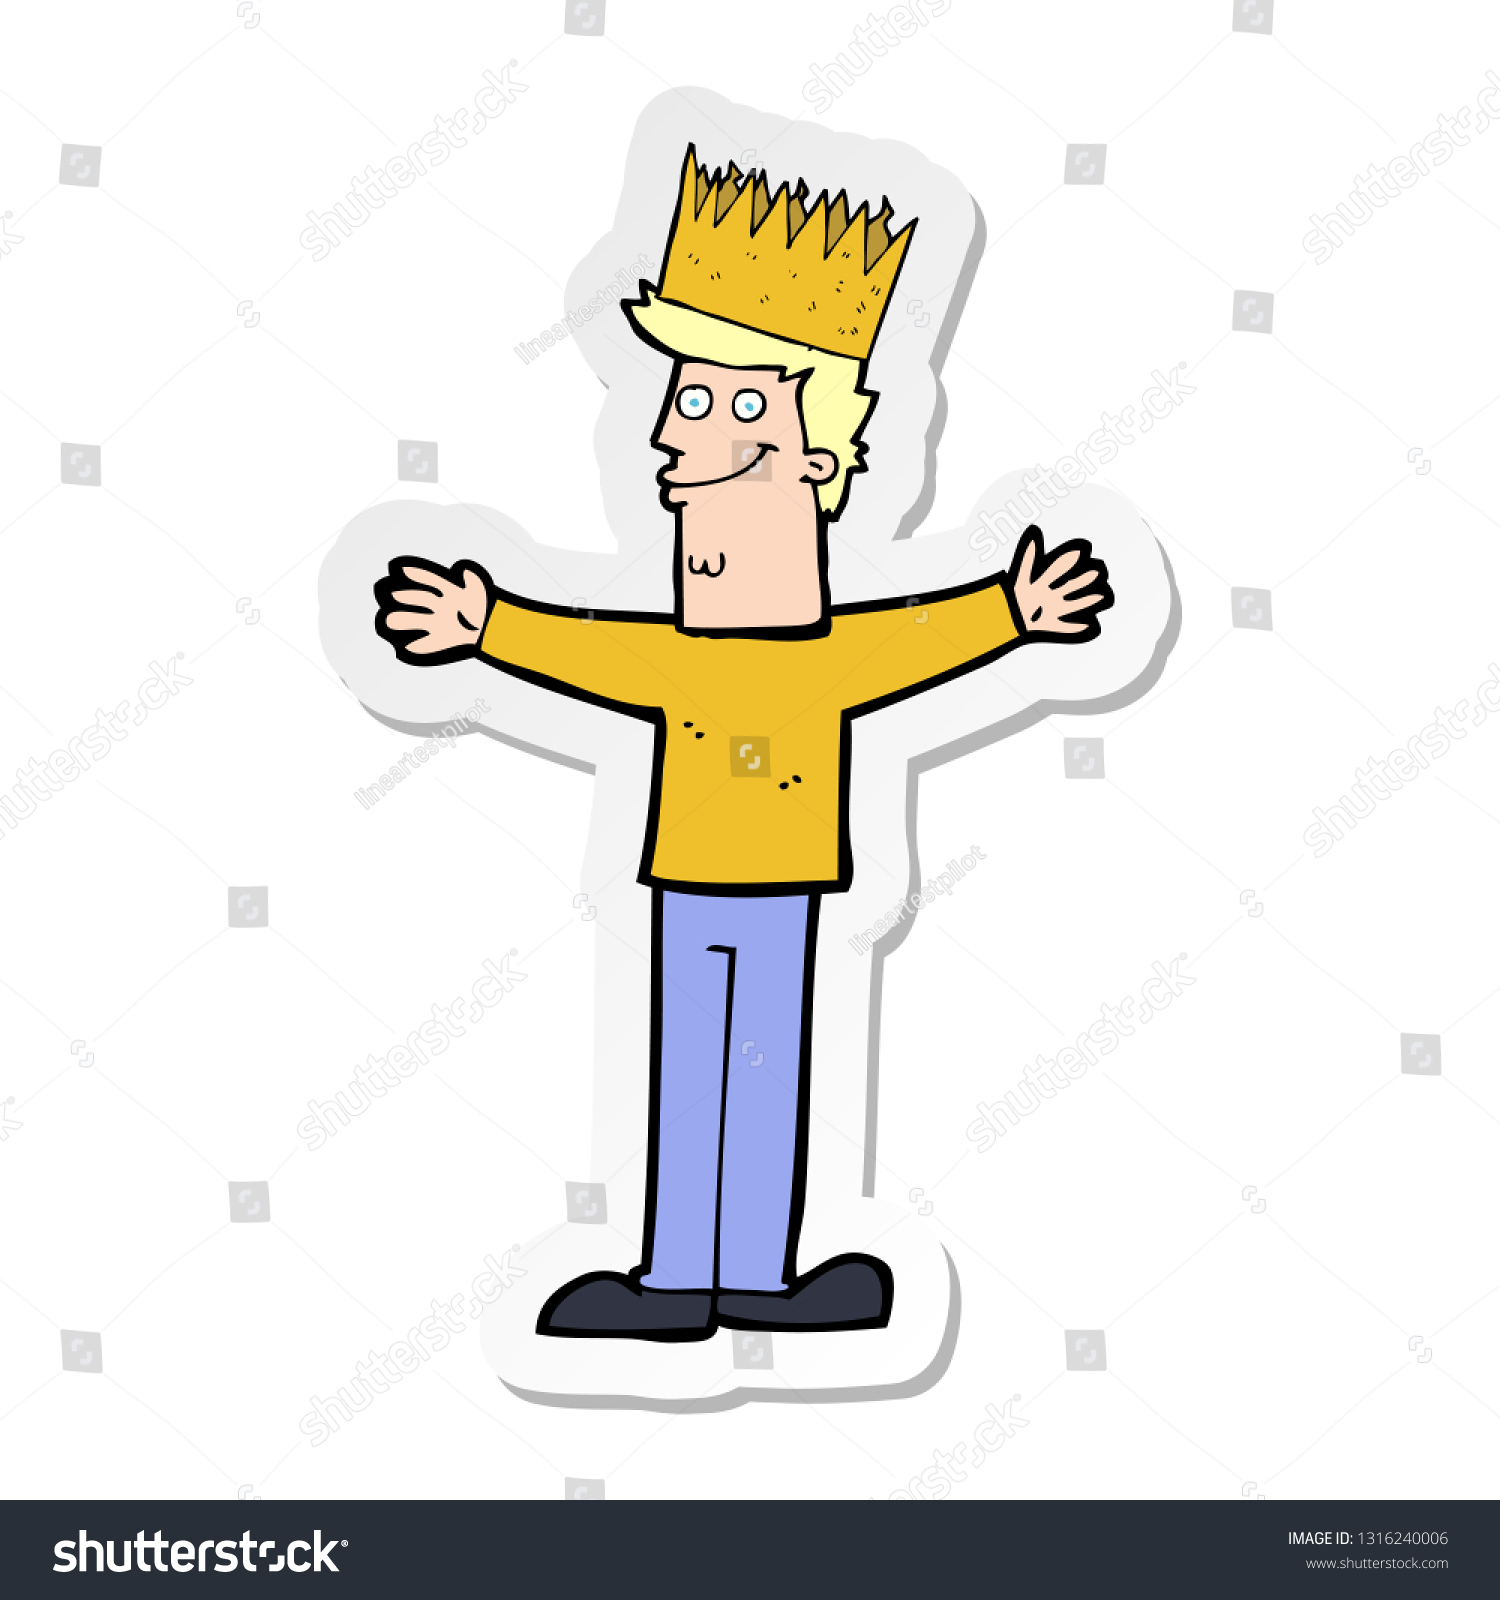 Sticker Cartoon Man Wearing Crown Stock Vector Royalty Free 1316240006 See what cartoon crown (cartooncrown) has discovered on pinterest, the world's biggest collection of ideas. https www shutterstock com image vector sticker cartoon man wearing crown 1316240006